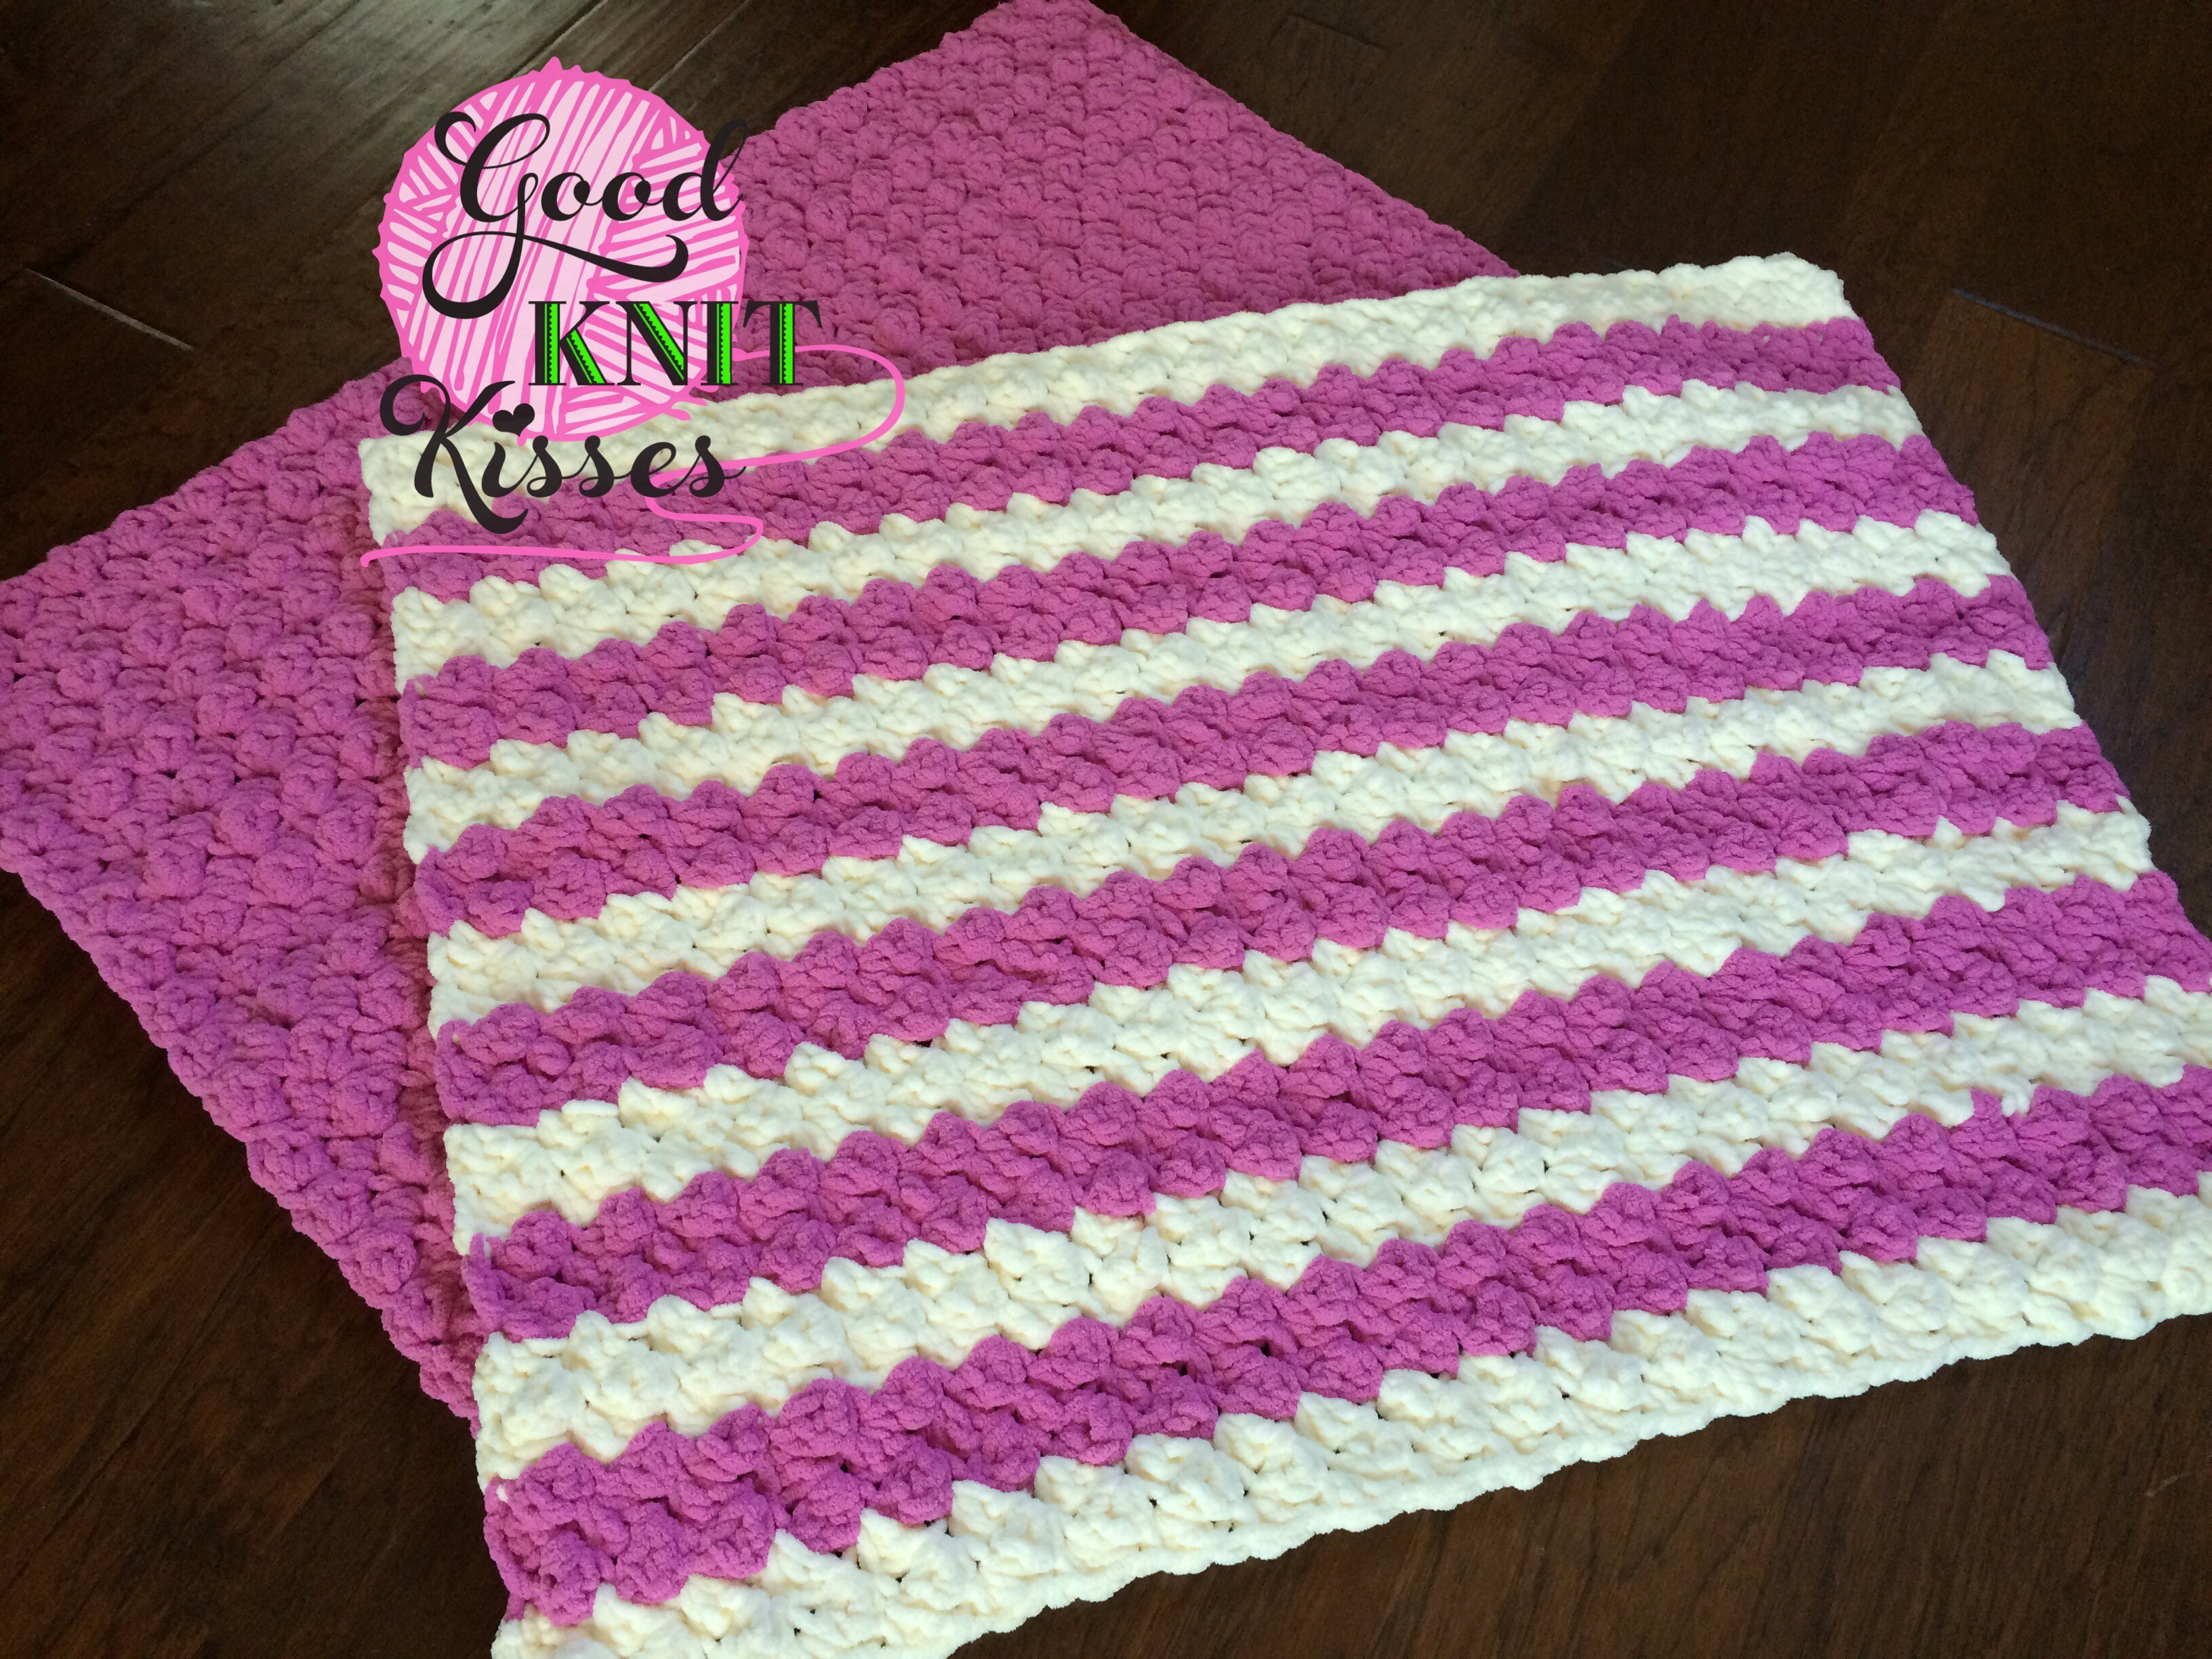 Crochet Baby Blanket Patterns for Beginners Fresh Crochet Baby Blanket Patterns for Beginners Videos Of Innovative 45 Pics Crochet Baby Blanket Patterns for Beginners